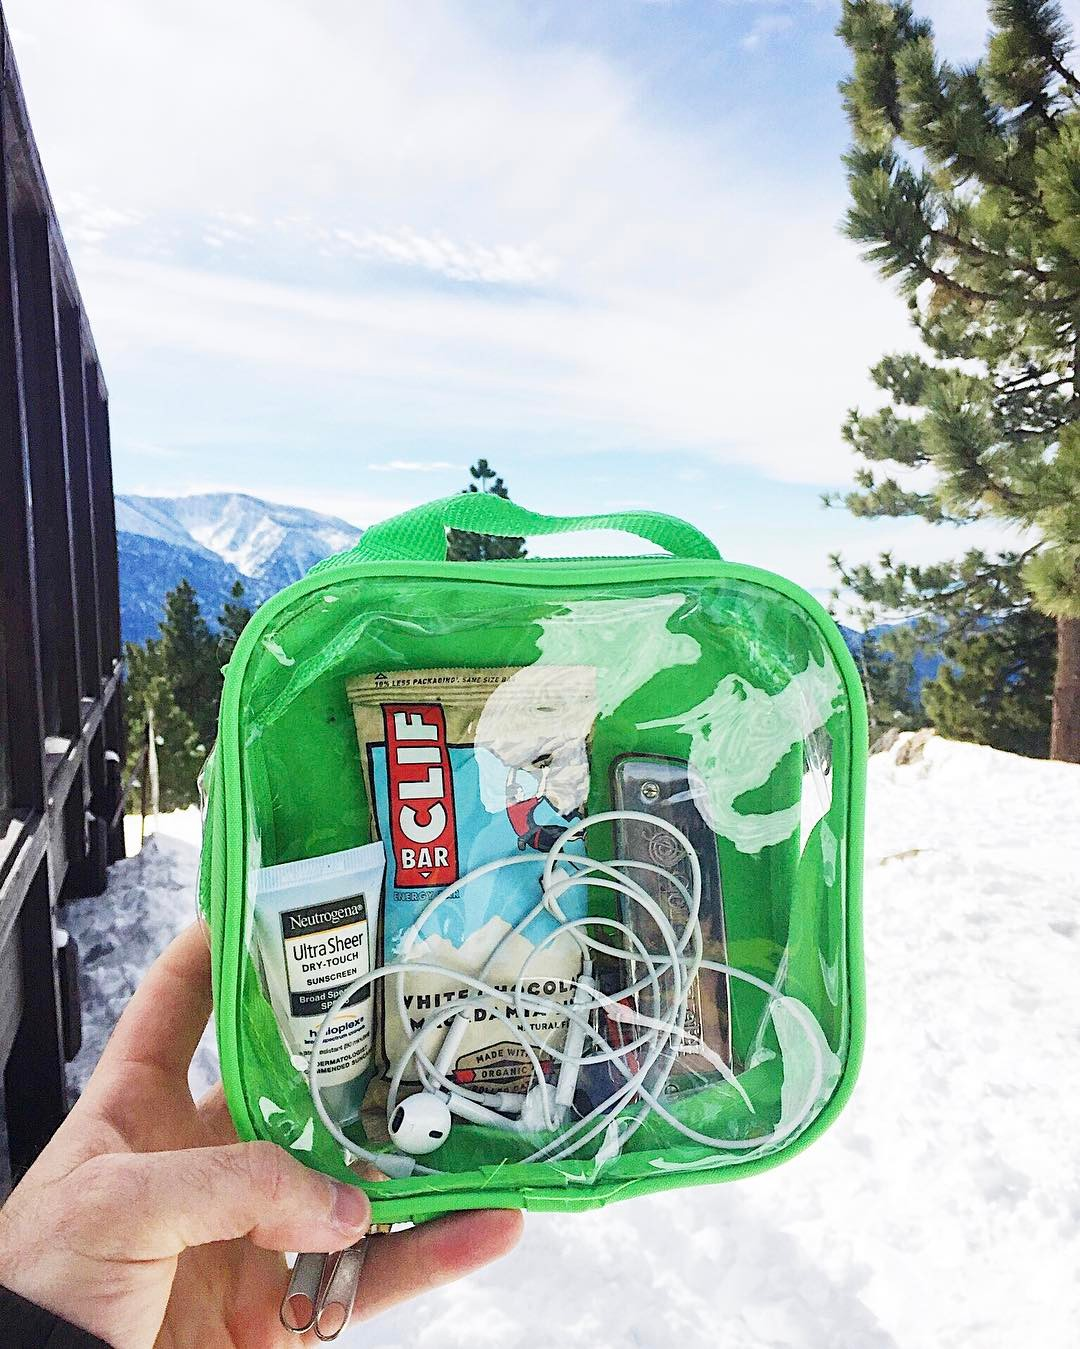 Packing cube with ski essentials